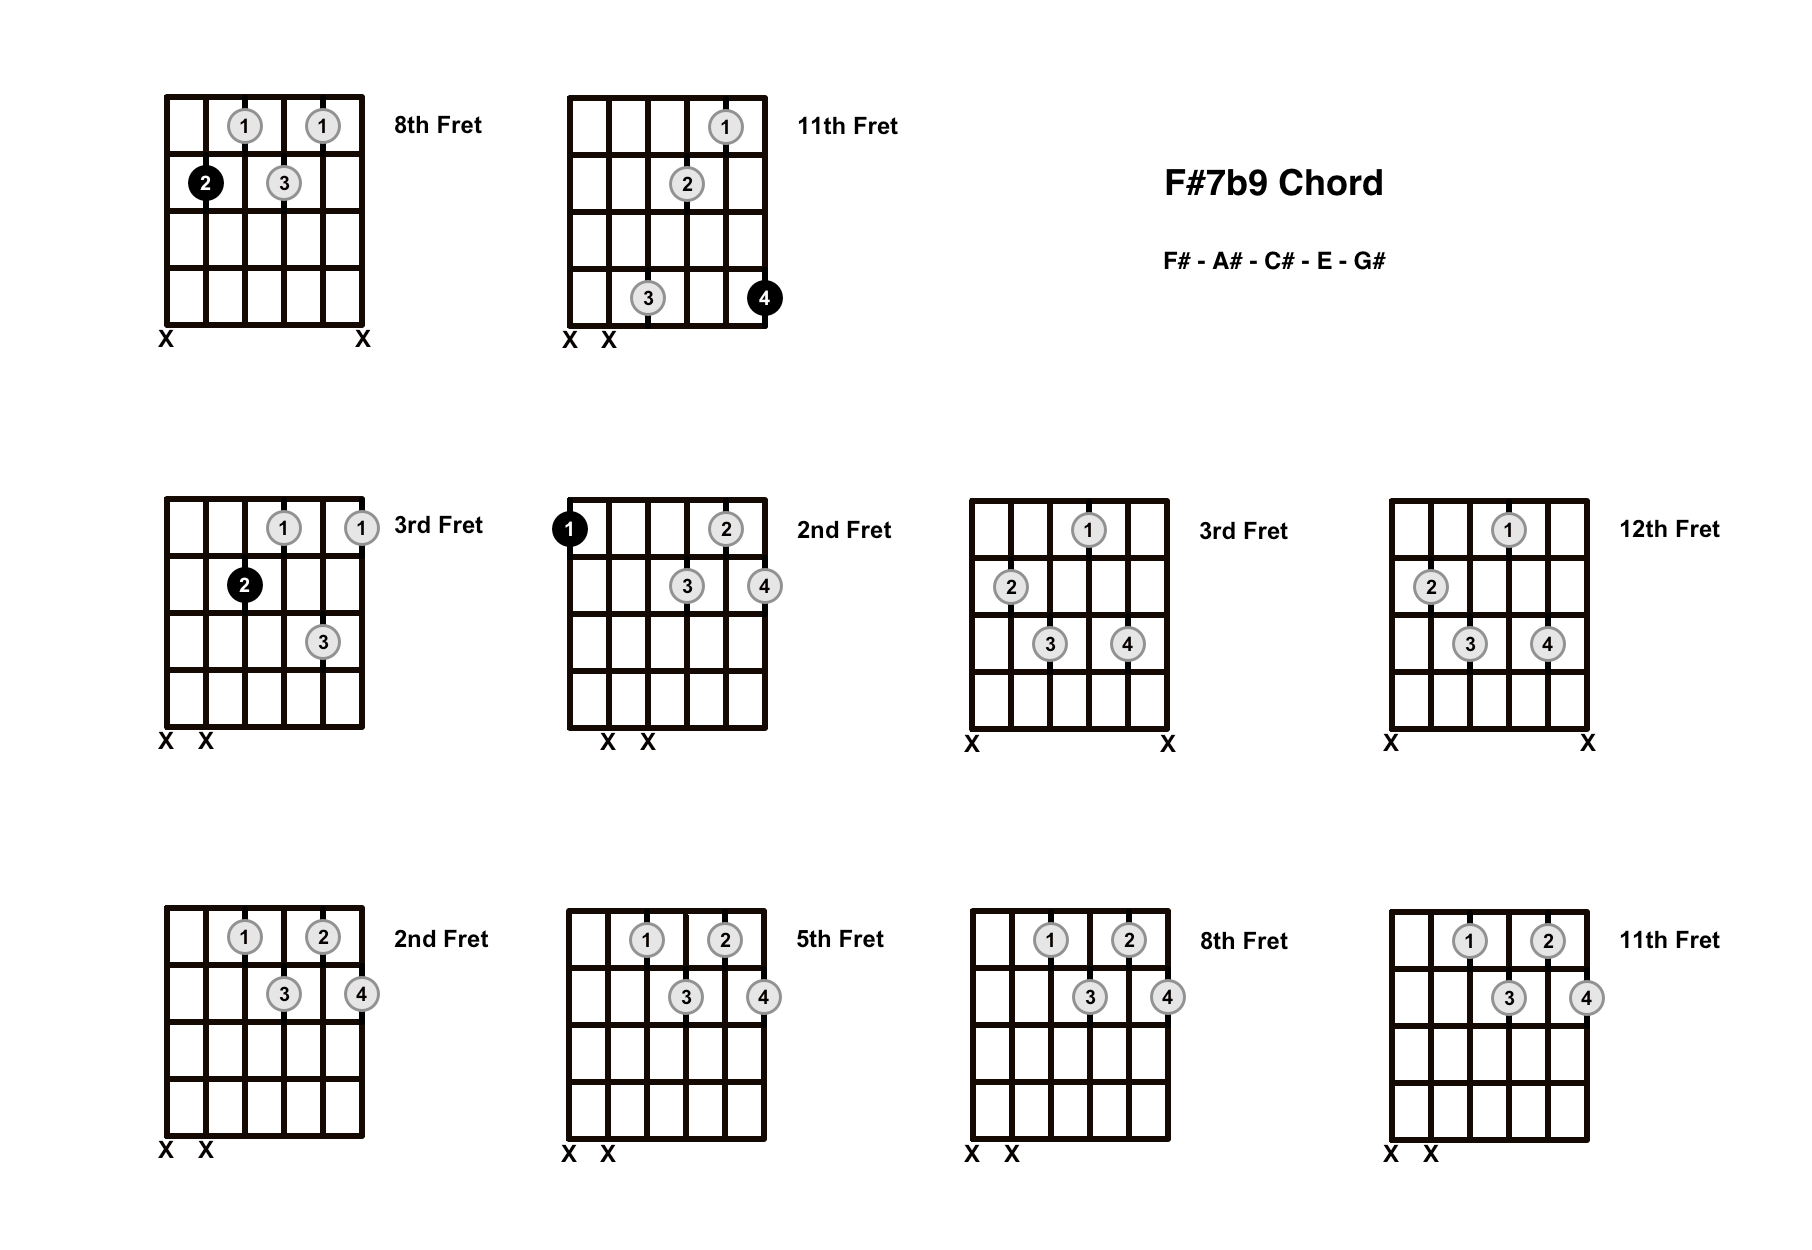 F#7b9 Chord On The Guitar (F Sharp 7 Flat 9) – Diagrams, Finger Positions and Theory